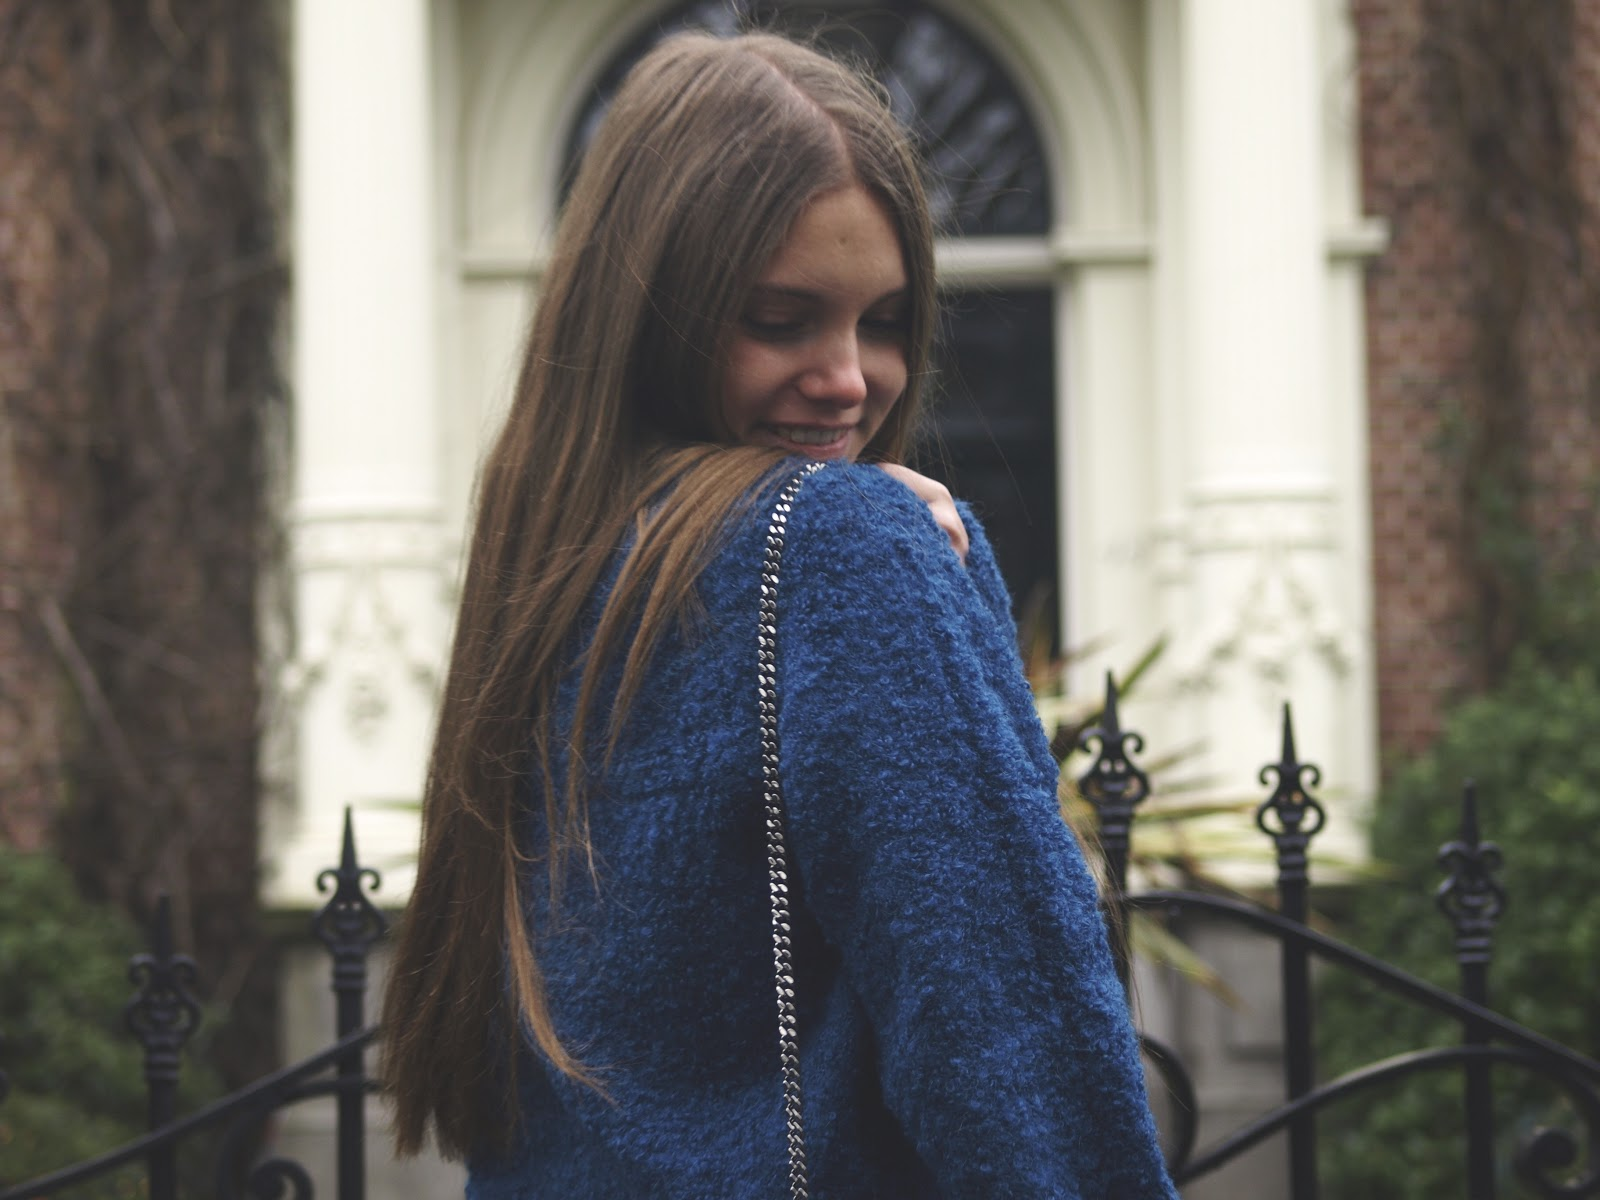 stella mccartney, zara, isabel marant, fashion, mode, blogger, new york, trip, planning, style